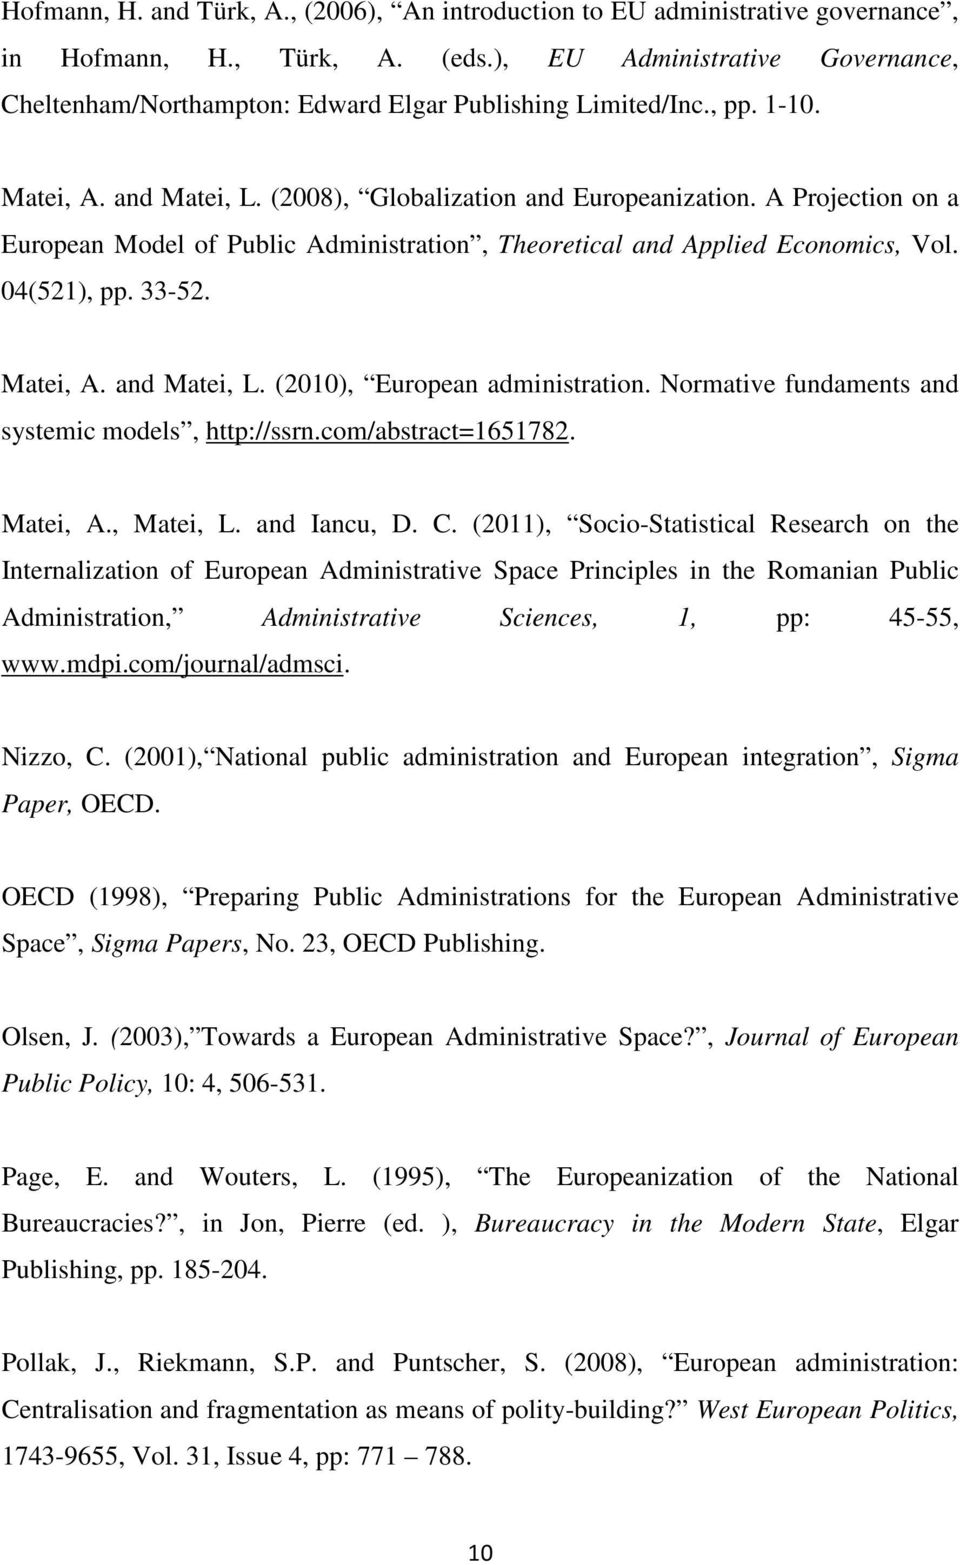 A Projection on a European Model of Public Administration, Theoretical and Applied Economics, Vol. 04(521), pp. 33-52. Matei, A. and Matei, L. (2010), European administration.